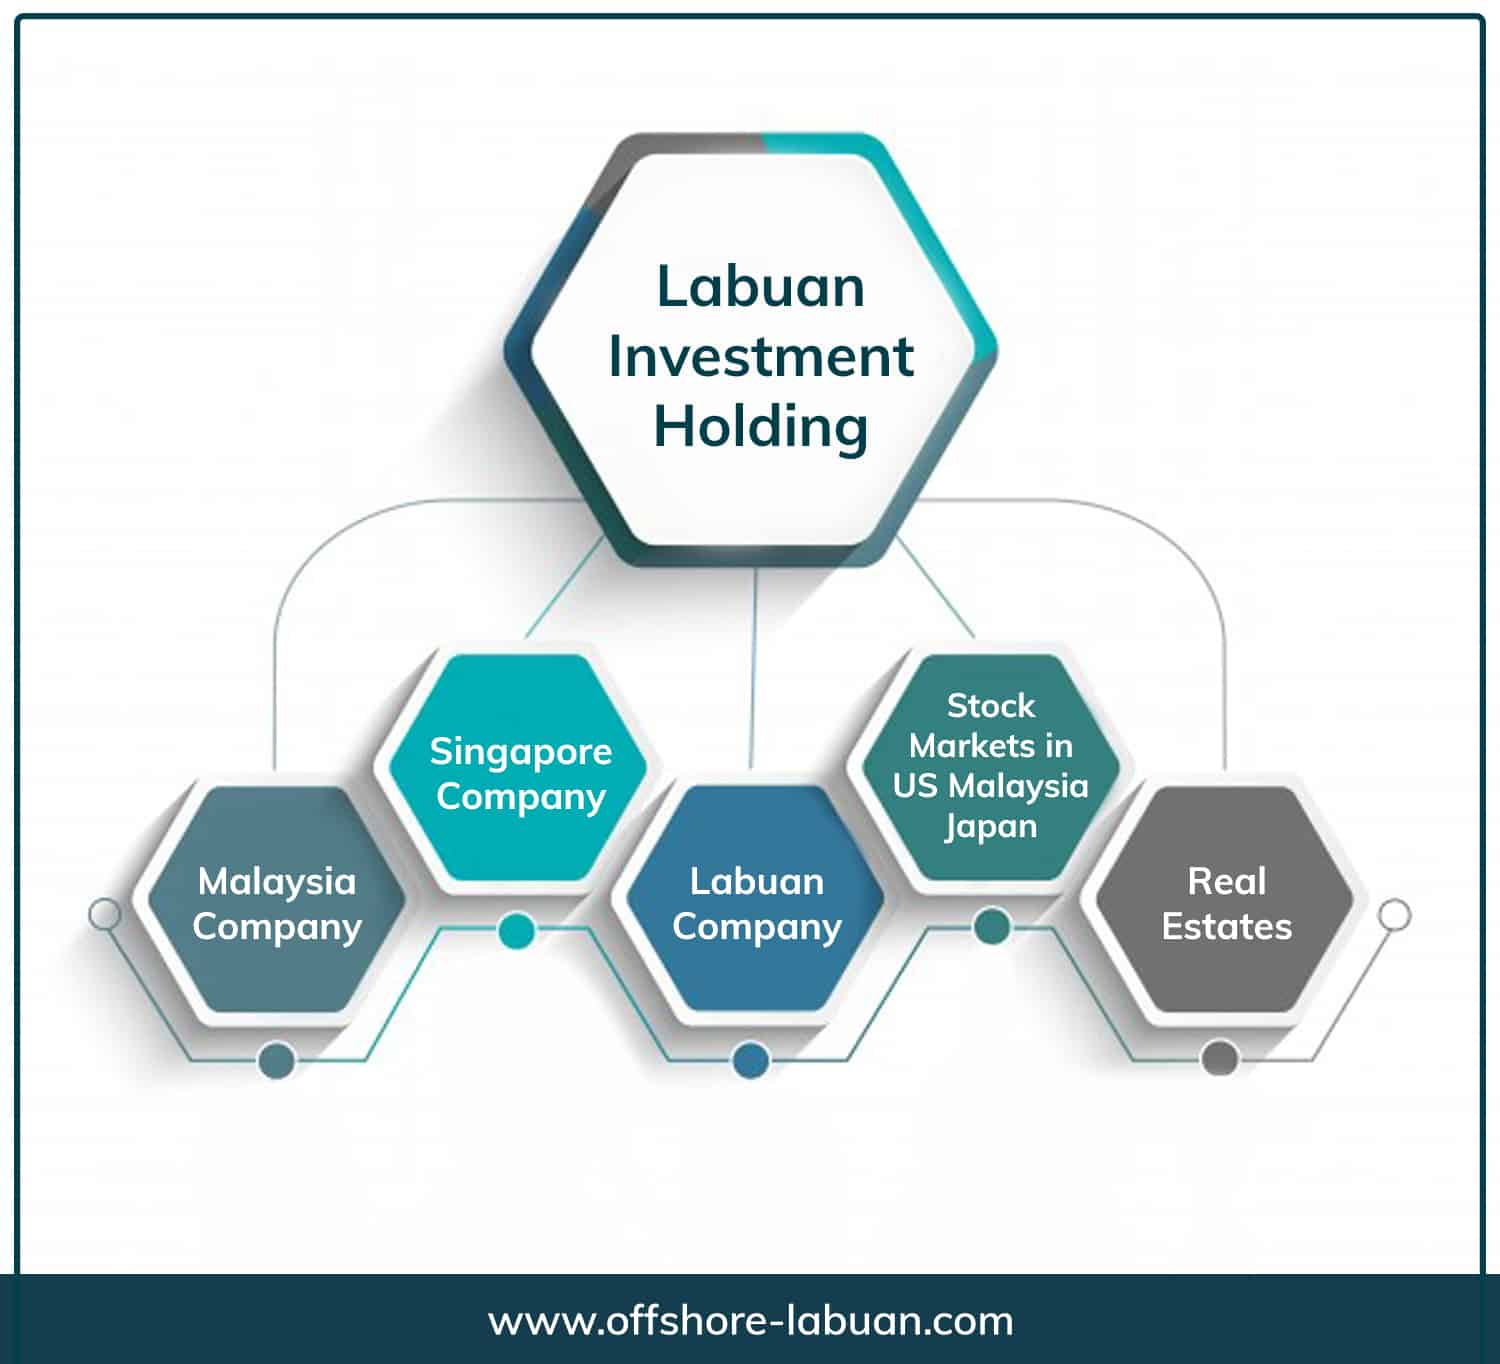 Set up a Labuan Investment Holding Company in Malaysia | QX Trust | Offshore Labuan Consultants